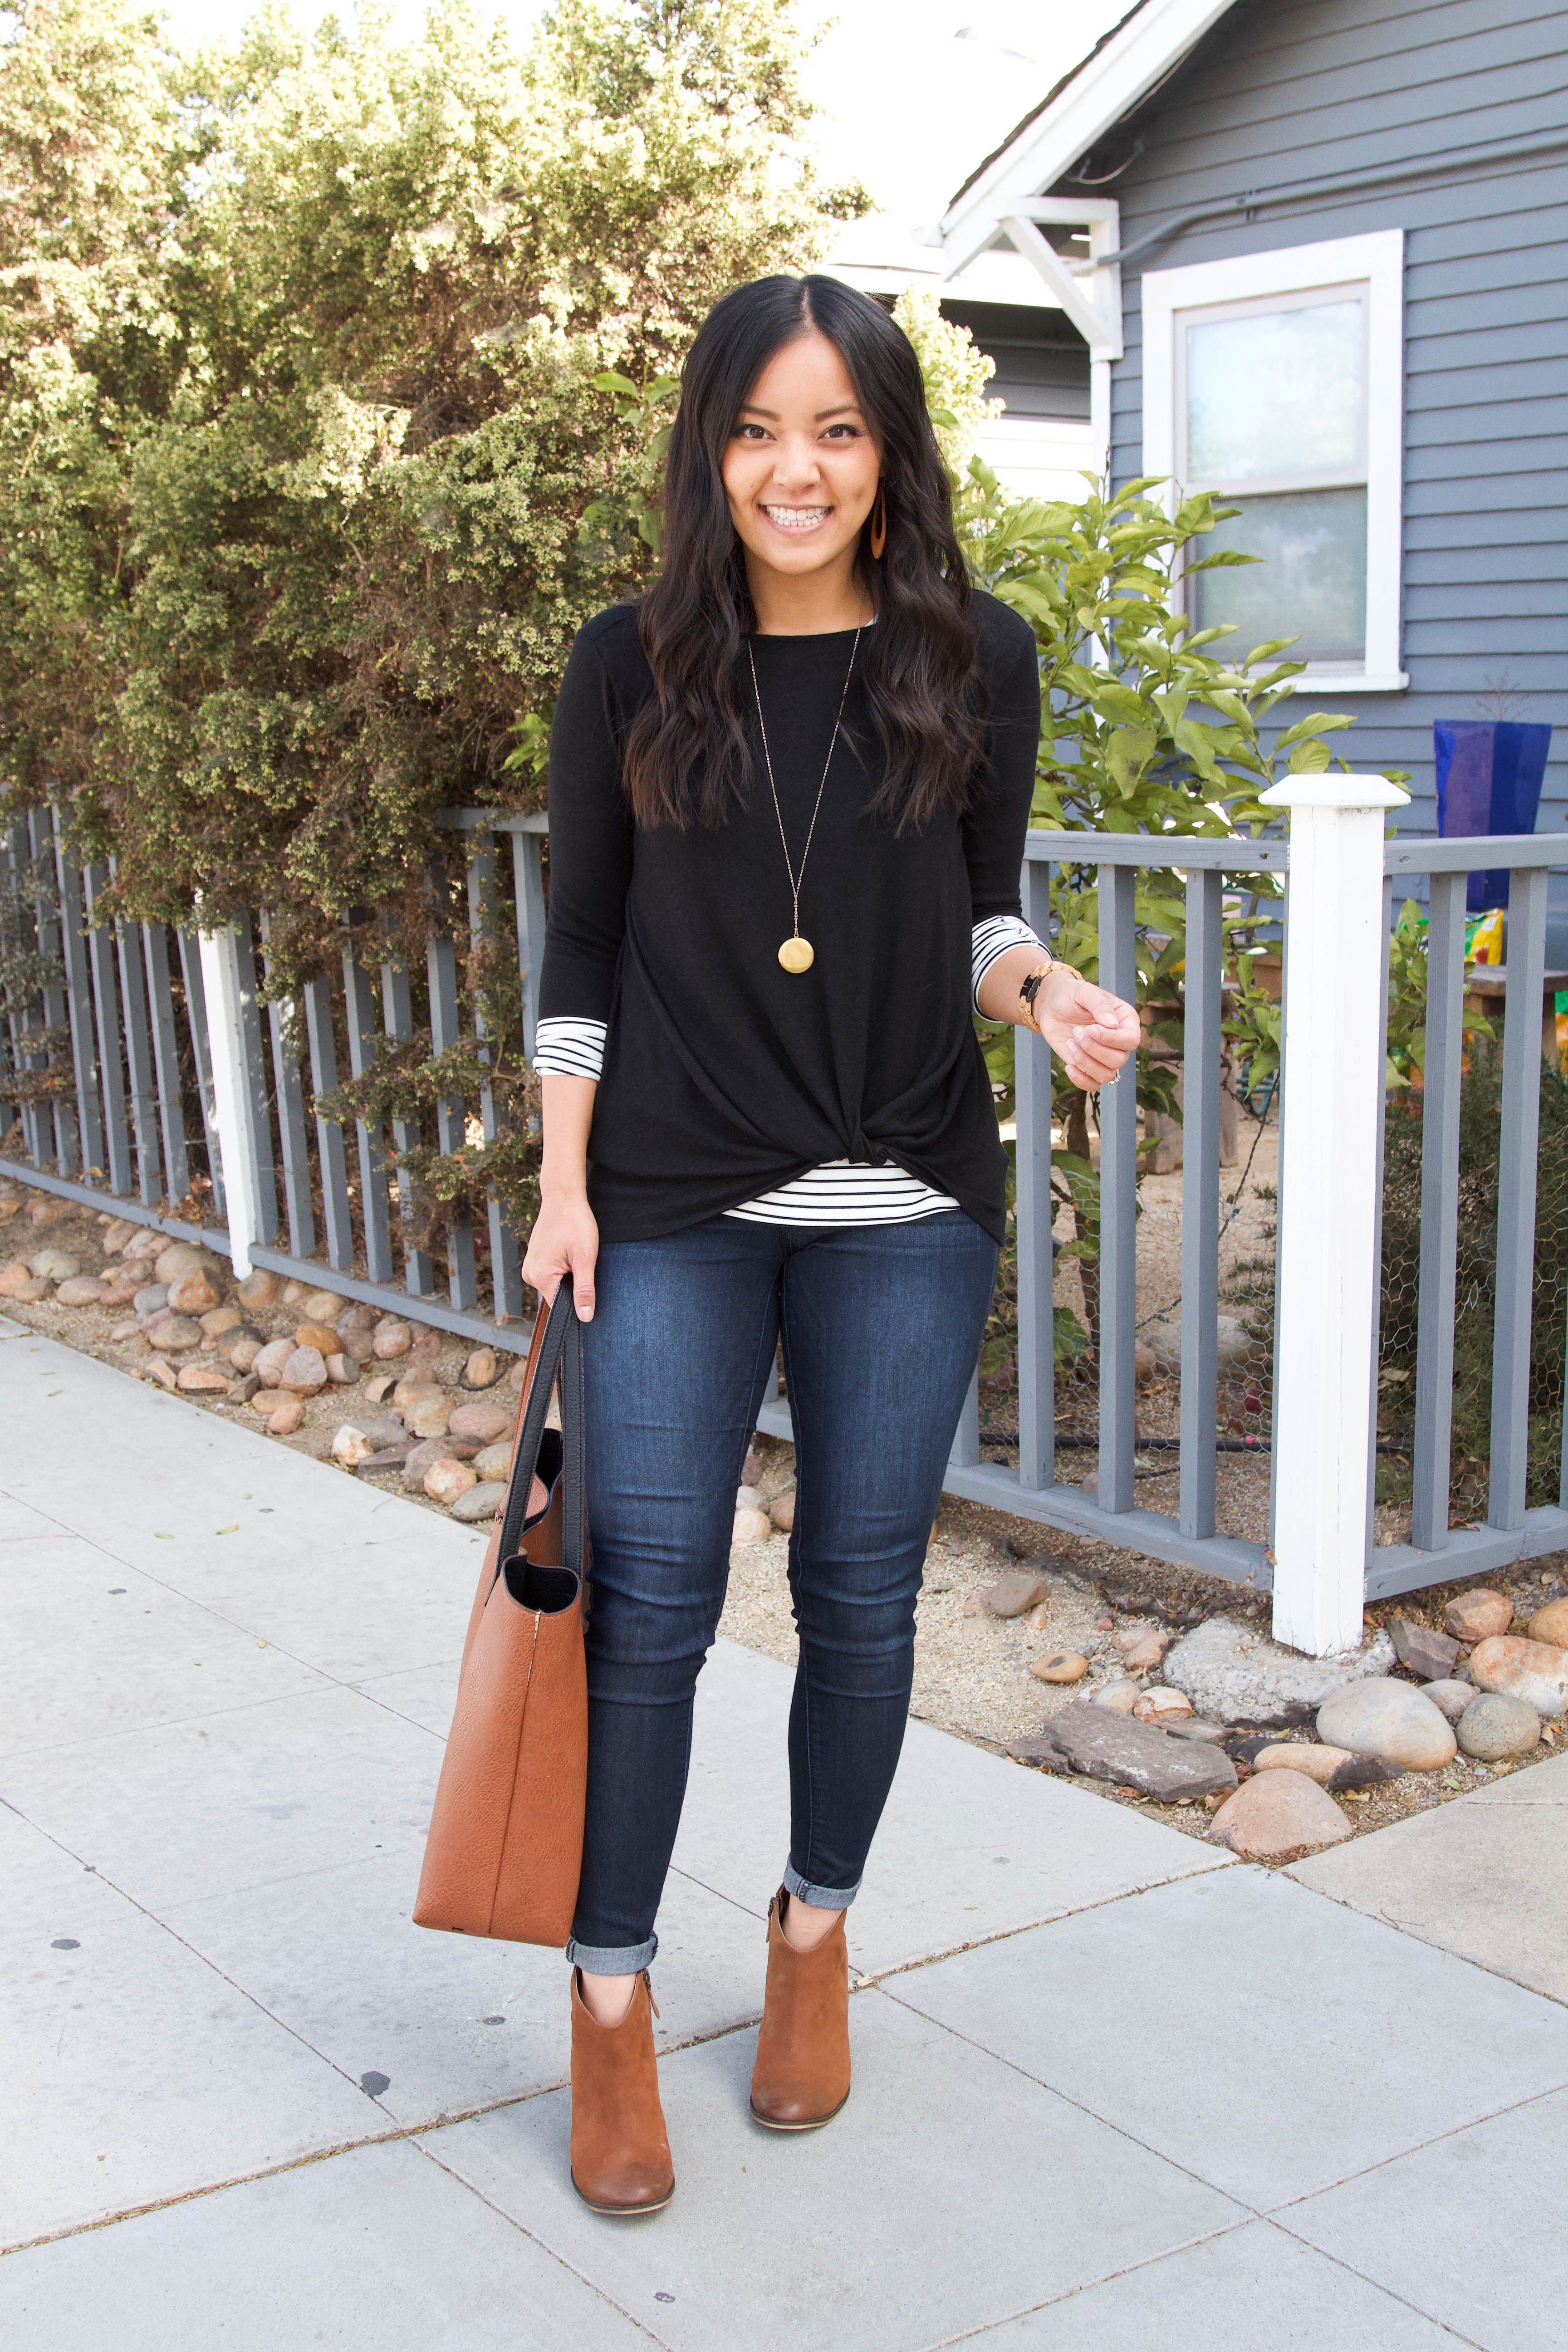 5 Super Comfy Thanksgiving Outfits (Including Stretchy Jeans!)